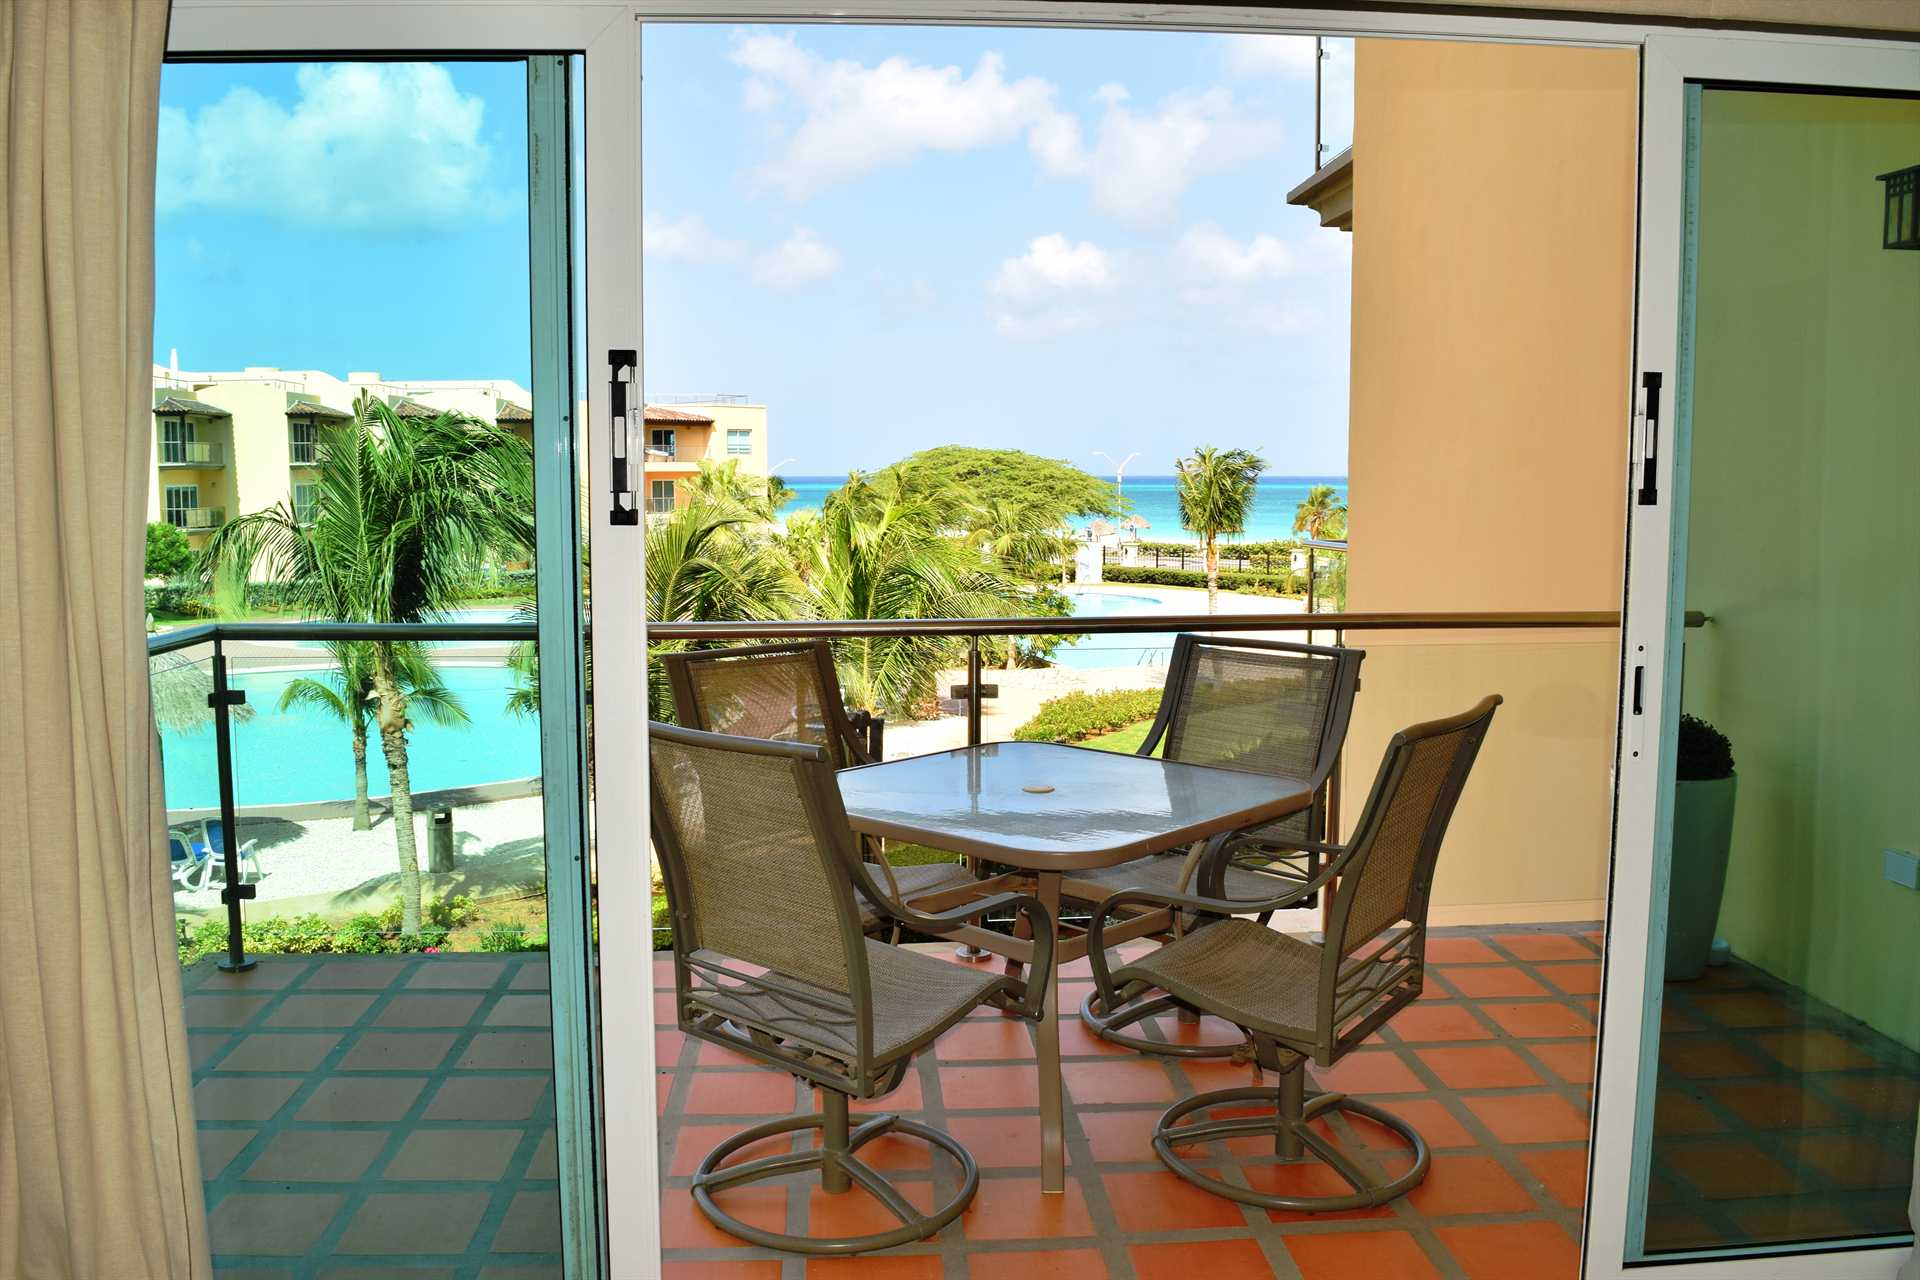 Enjoy amazing views from the living area balcony